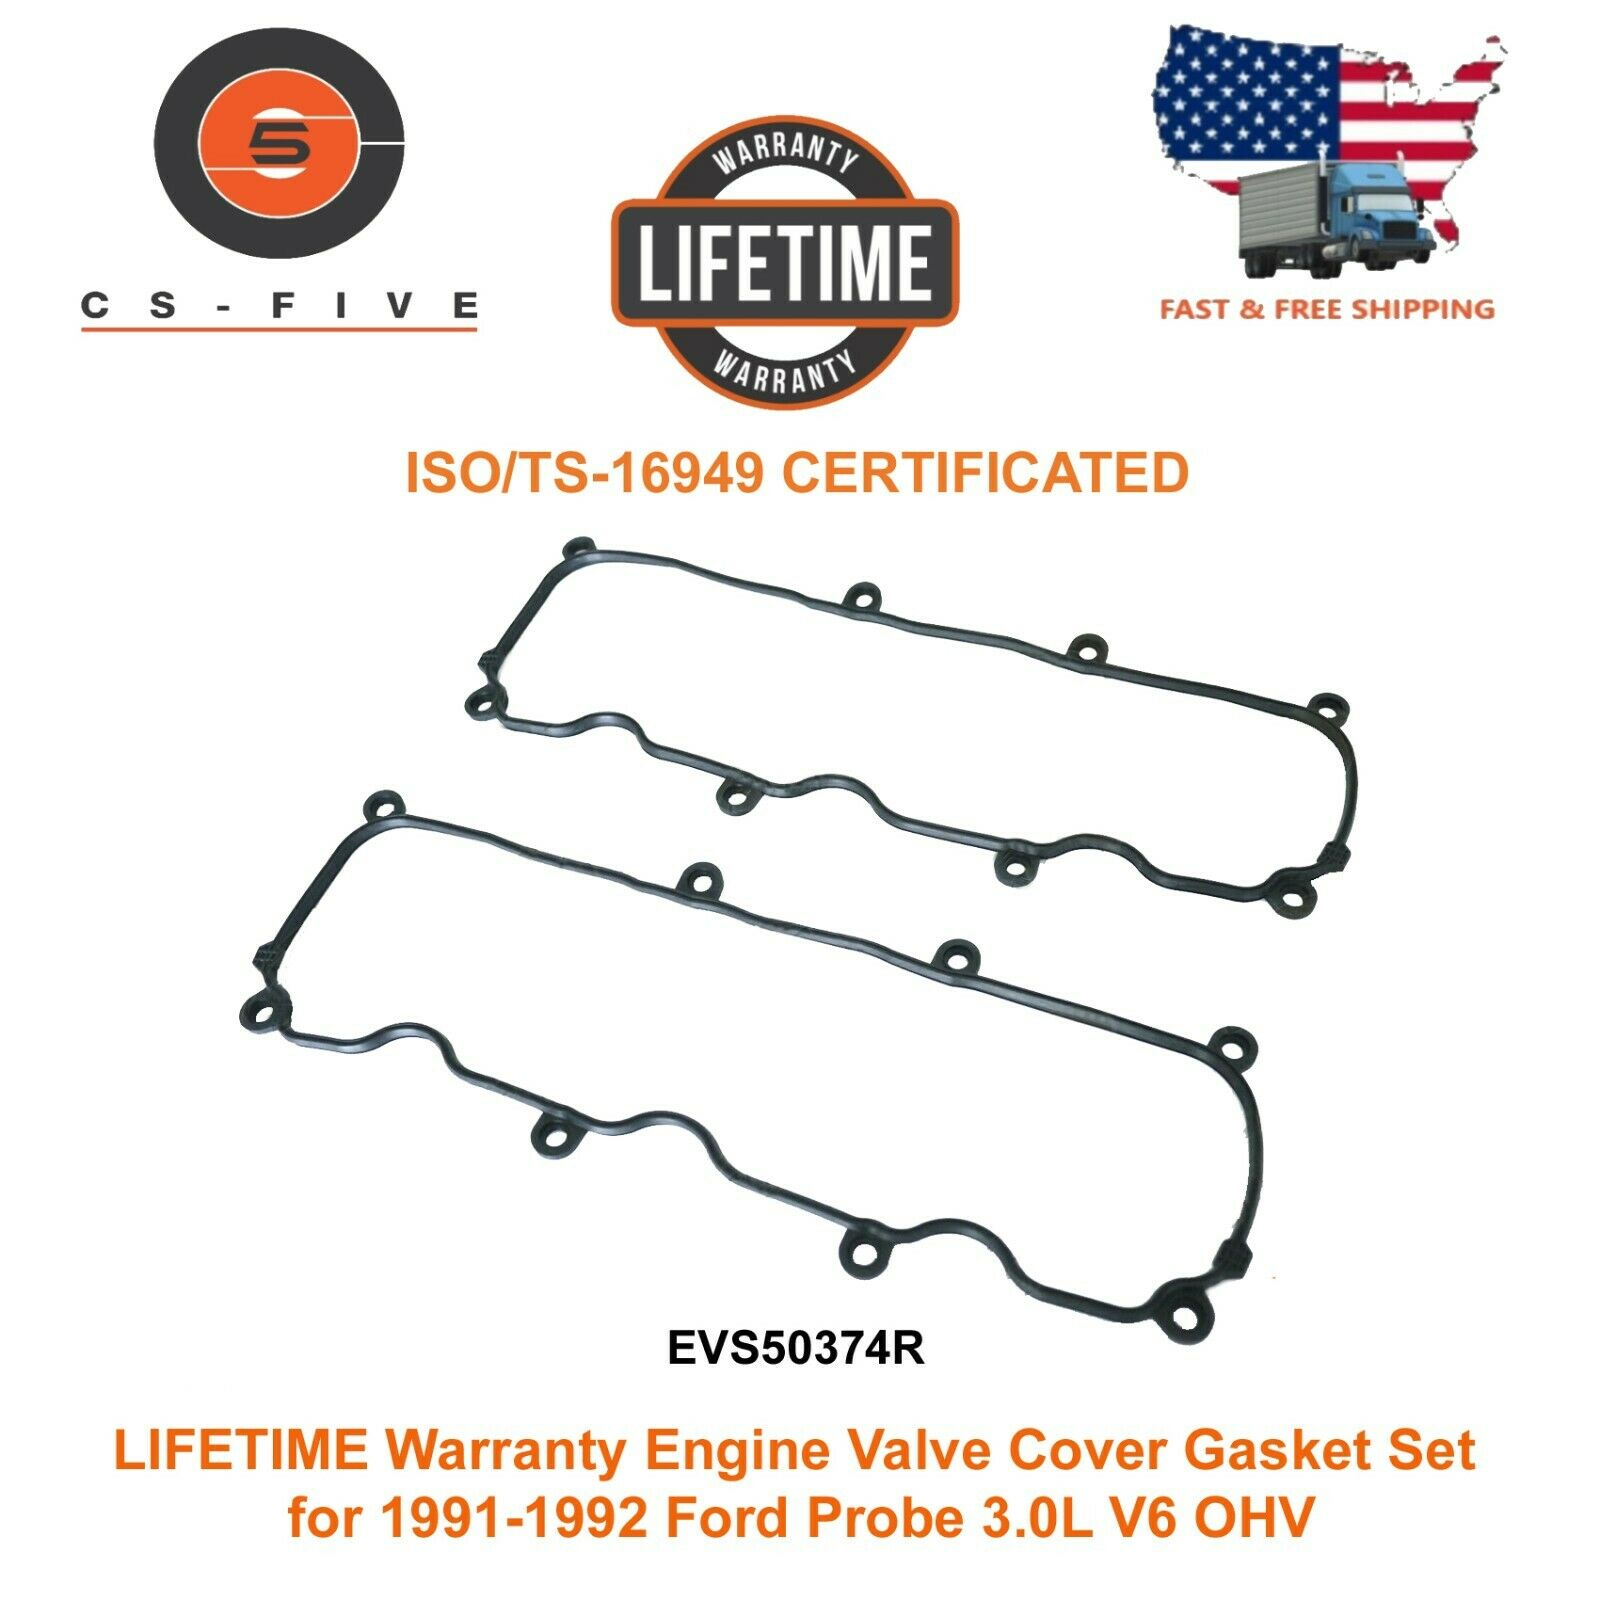 LIFETIME Warranty Valve Cover Gasket Set for 1991-1992 Ford Probe 3.0L V6 OHV 4F1Z6584AA VS50374R